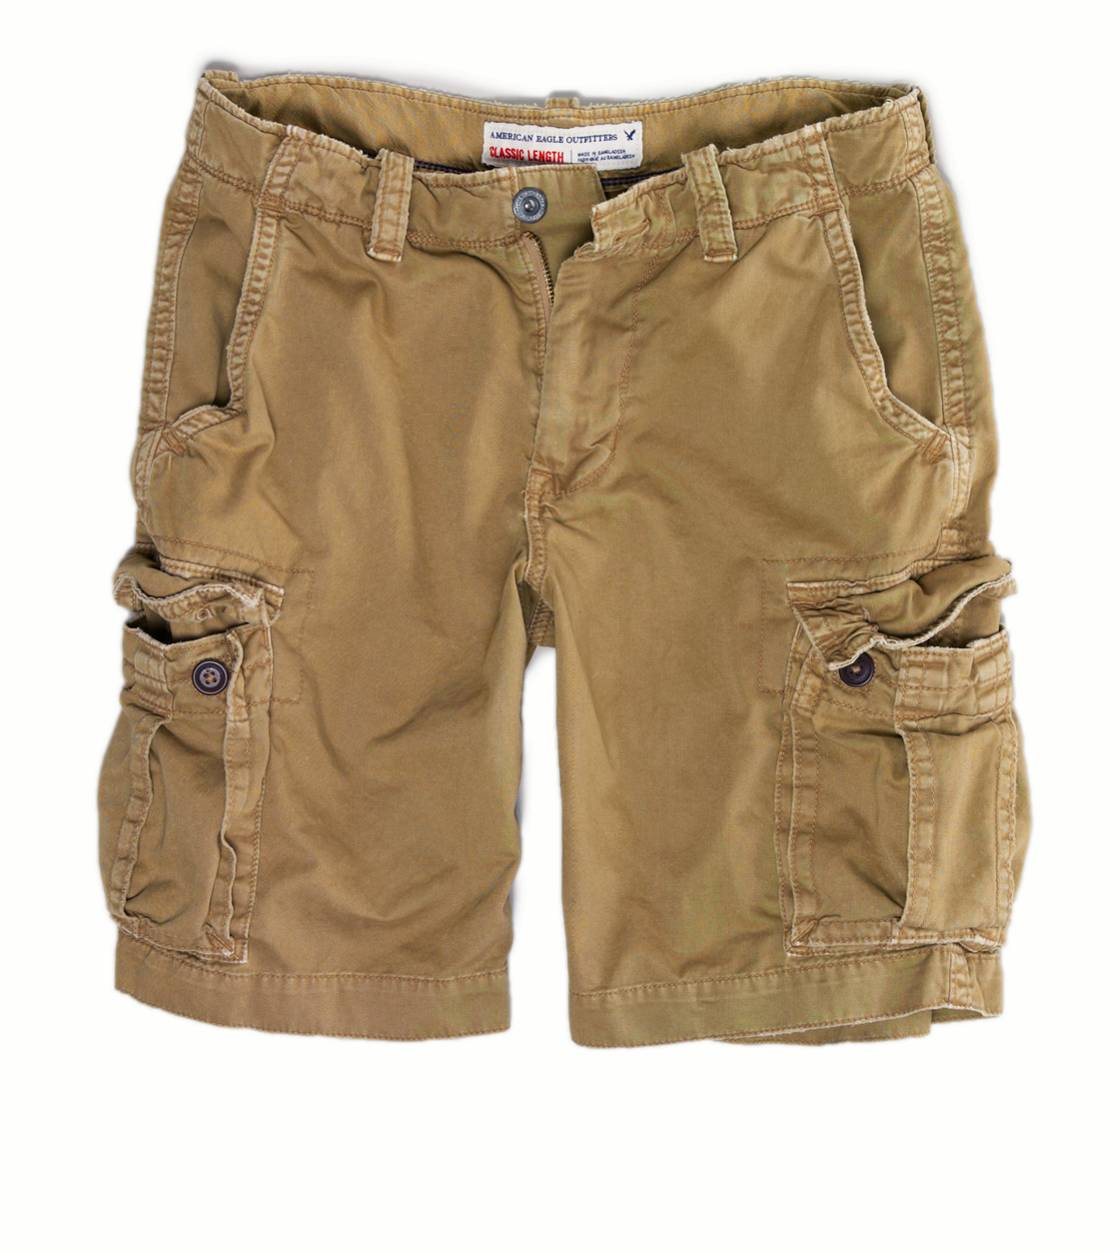 Cargo Shorts. Why the hate? - Page 4 - NeoGAF